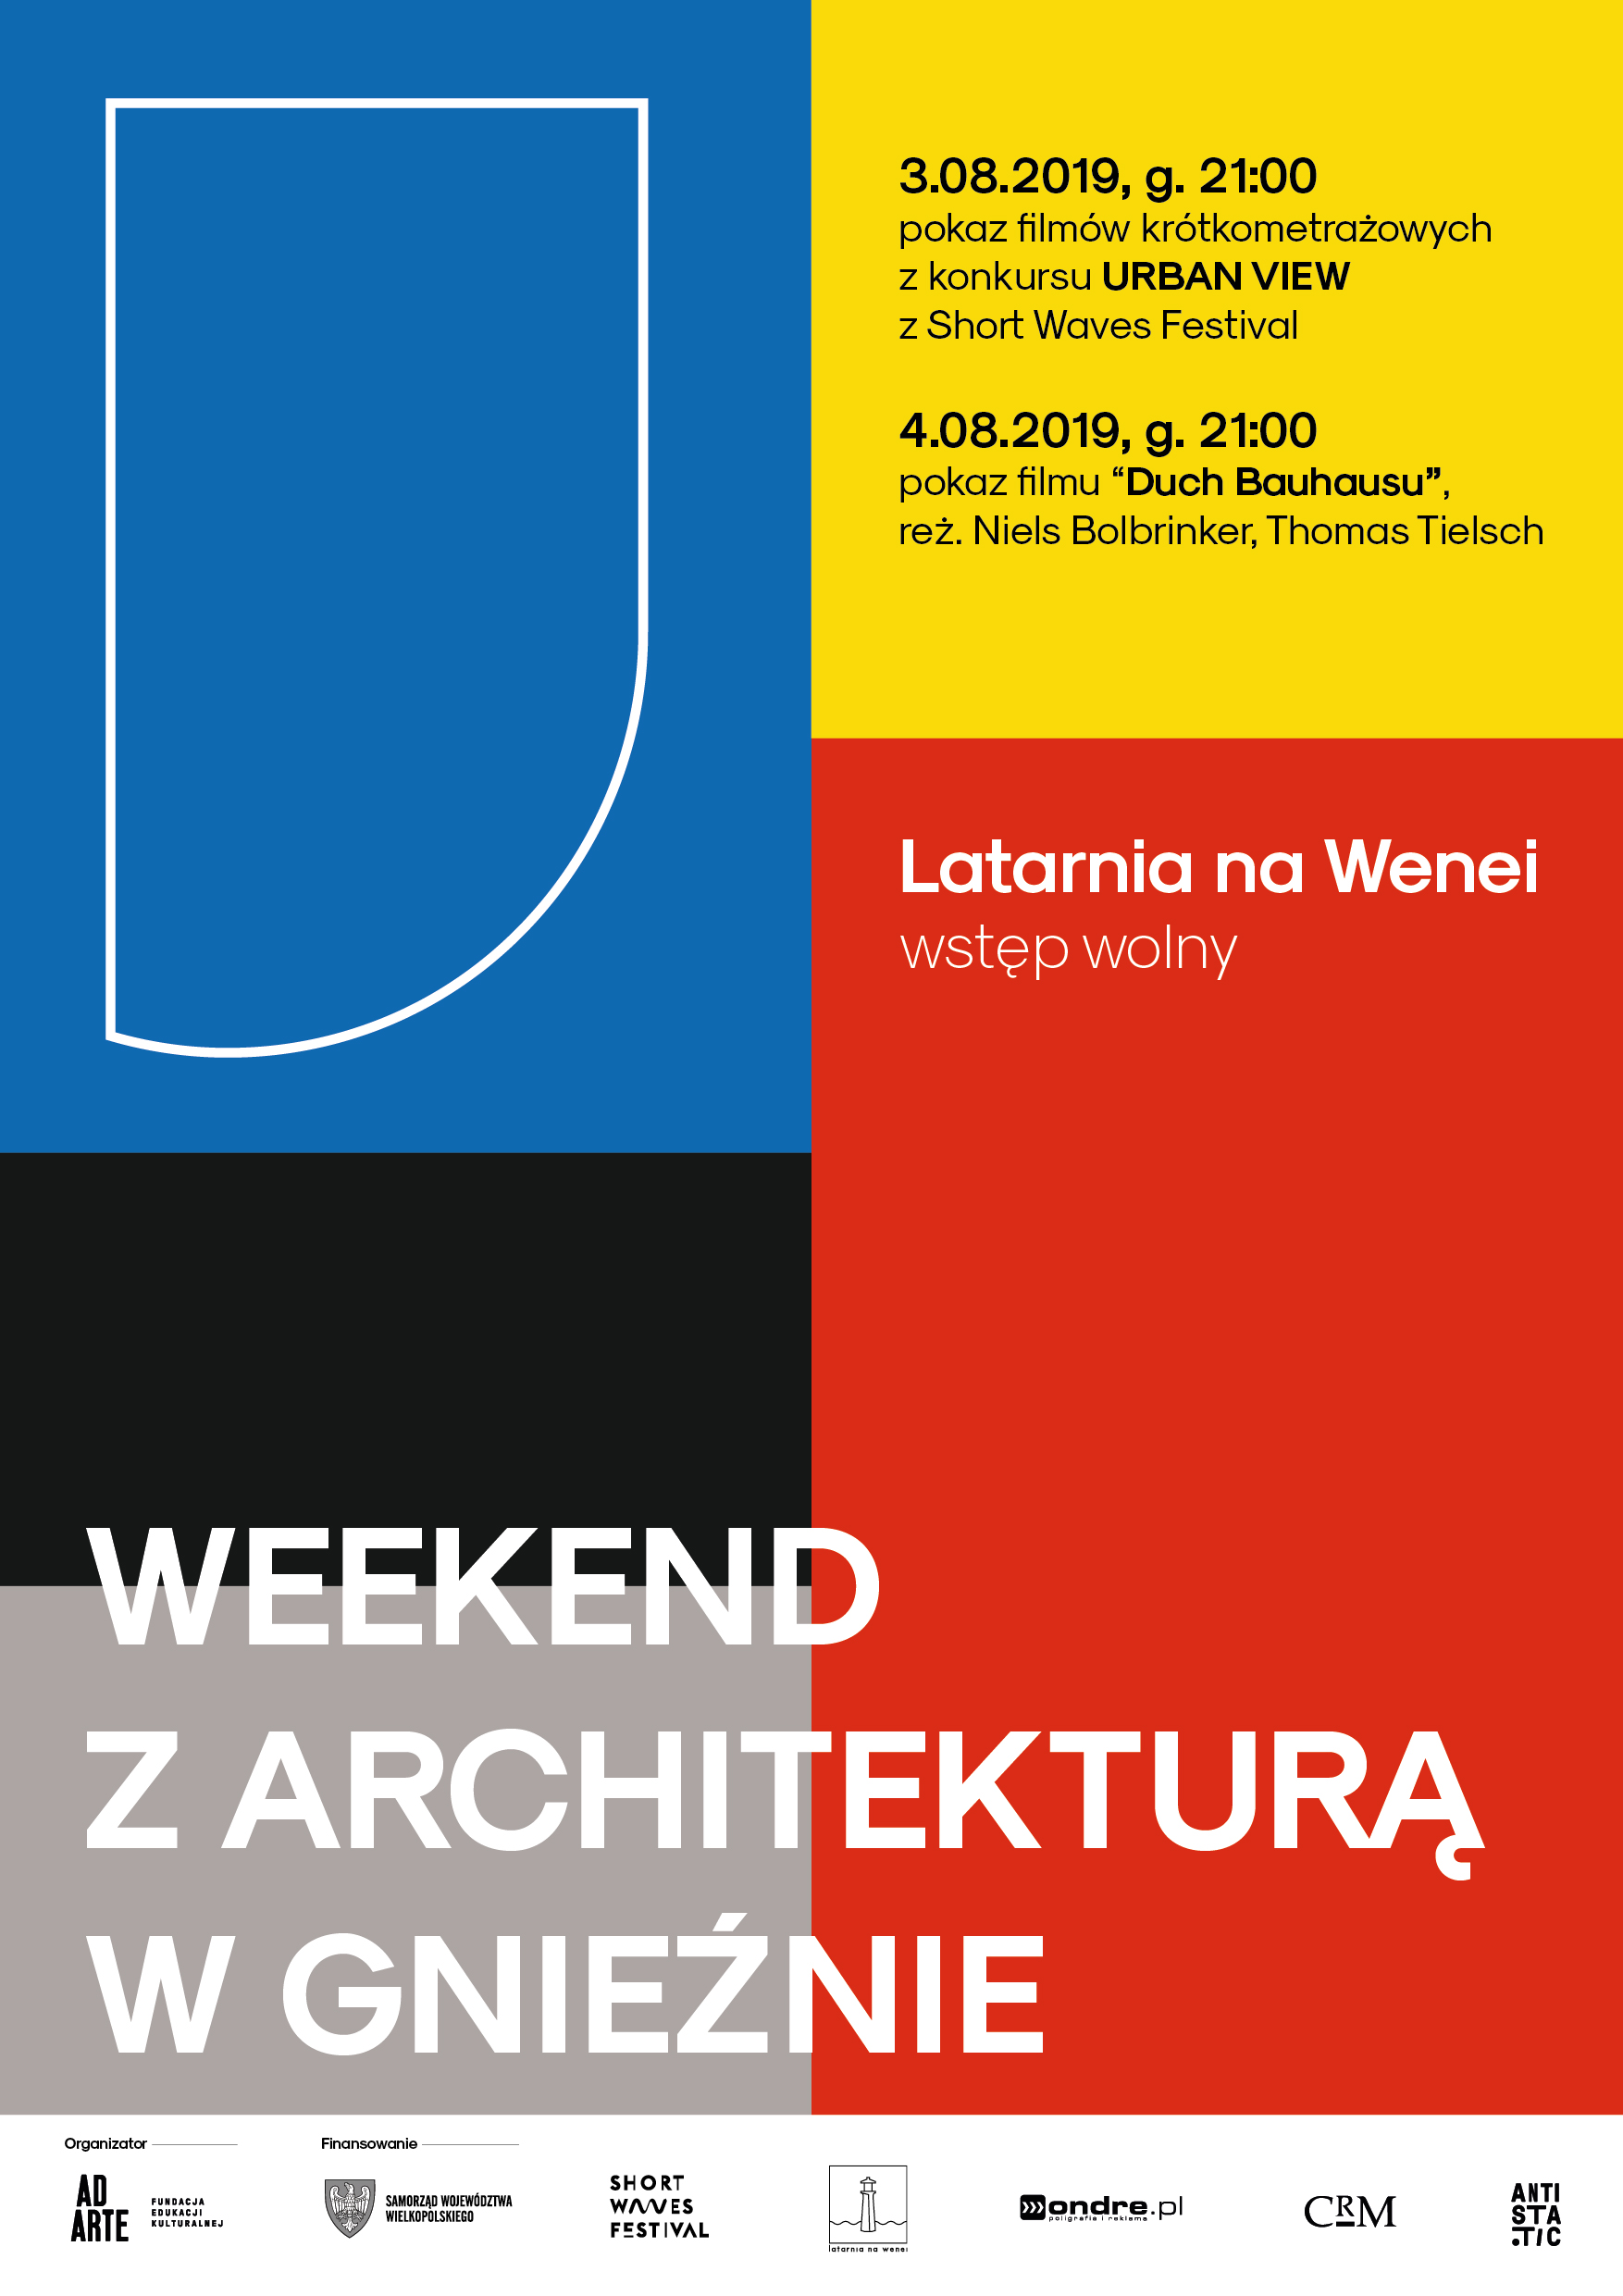 Weekend z architekturą